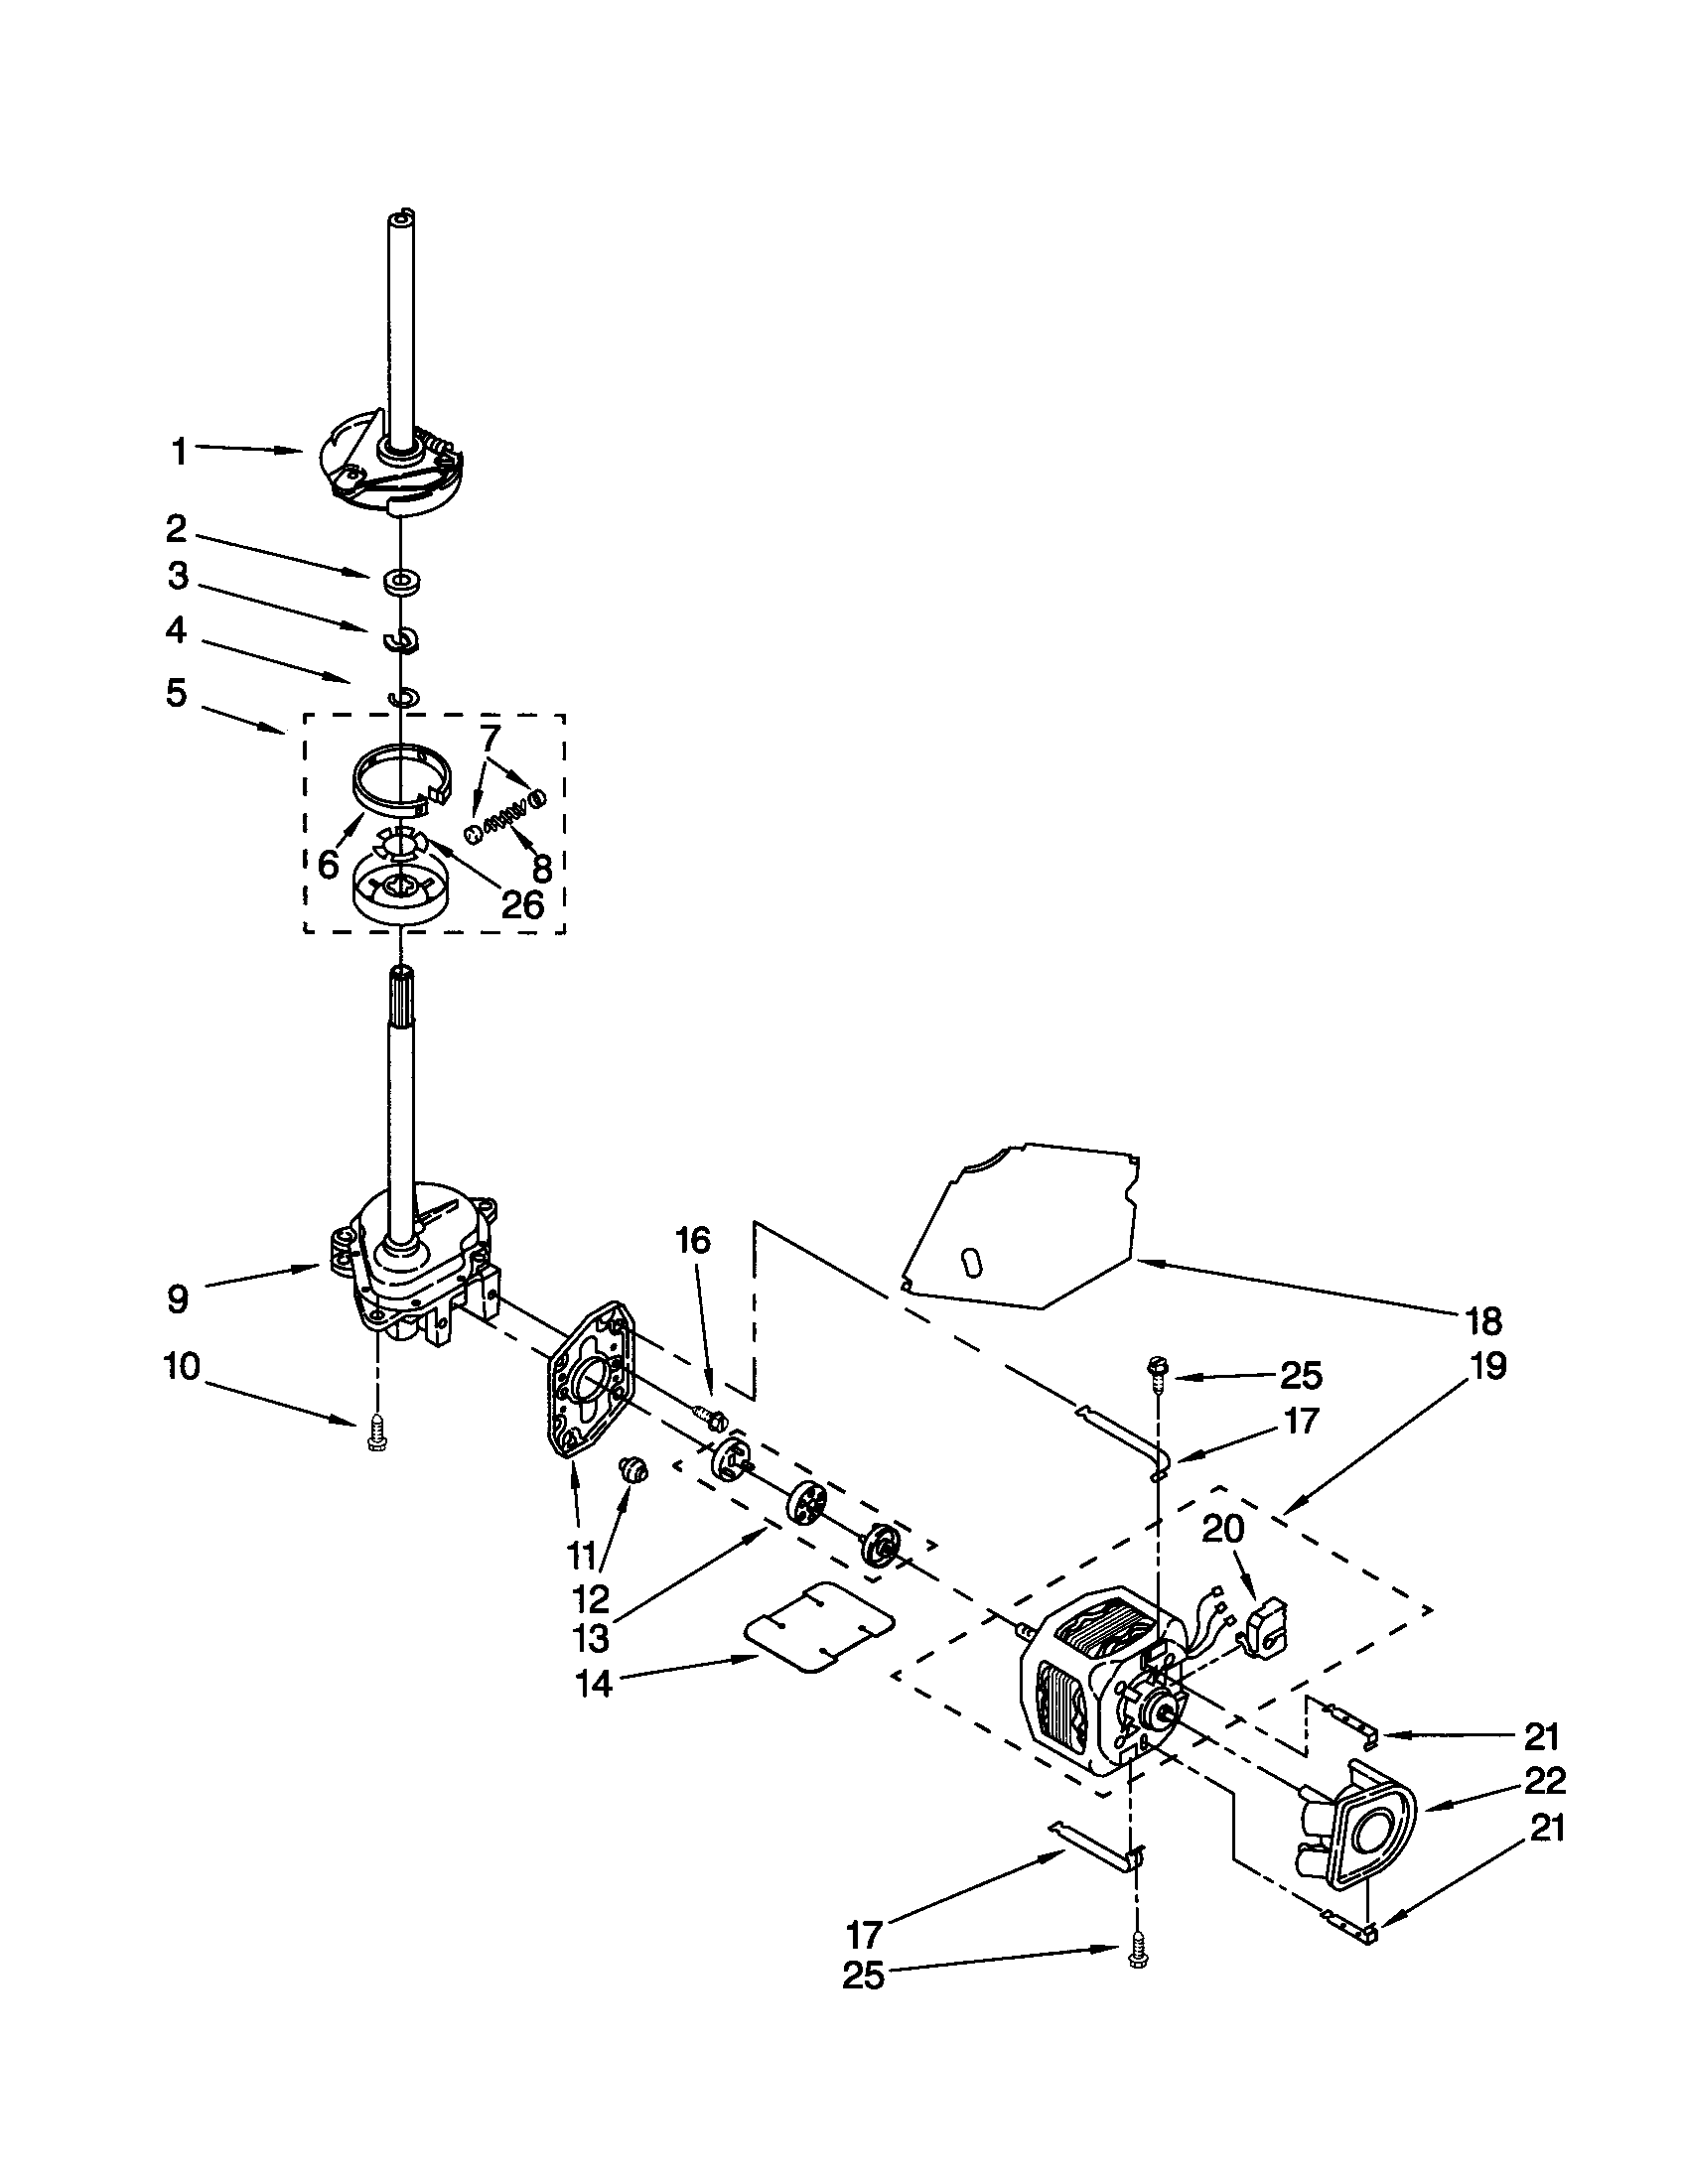 Kenmore washer parts model 11022922100 sears partsdirect kenmore 70 series washer diagram kenmore 70 washer parts kenmore 800 series gas diagram on kenmore